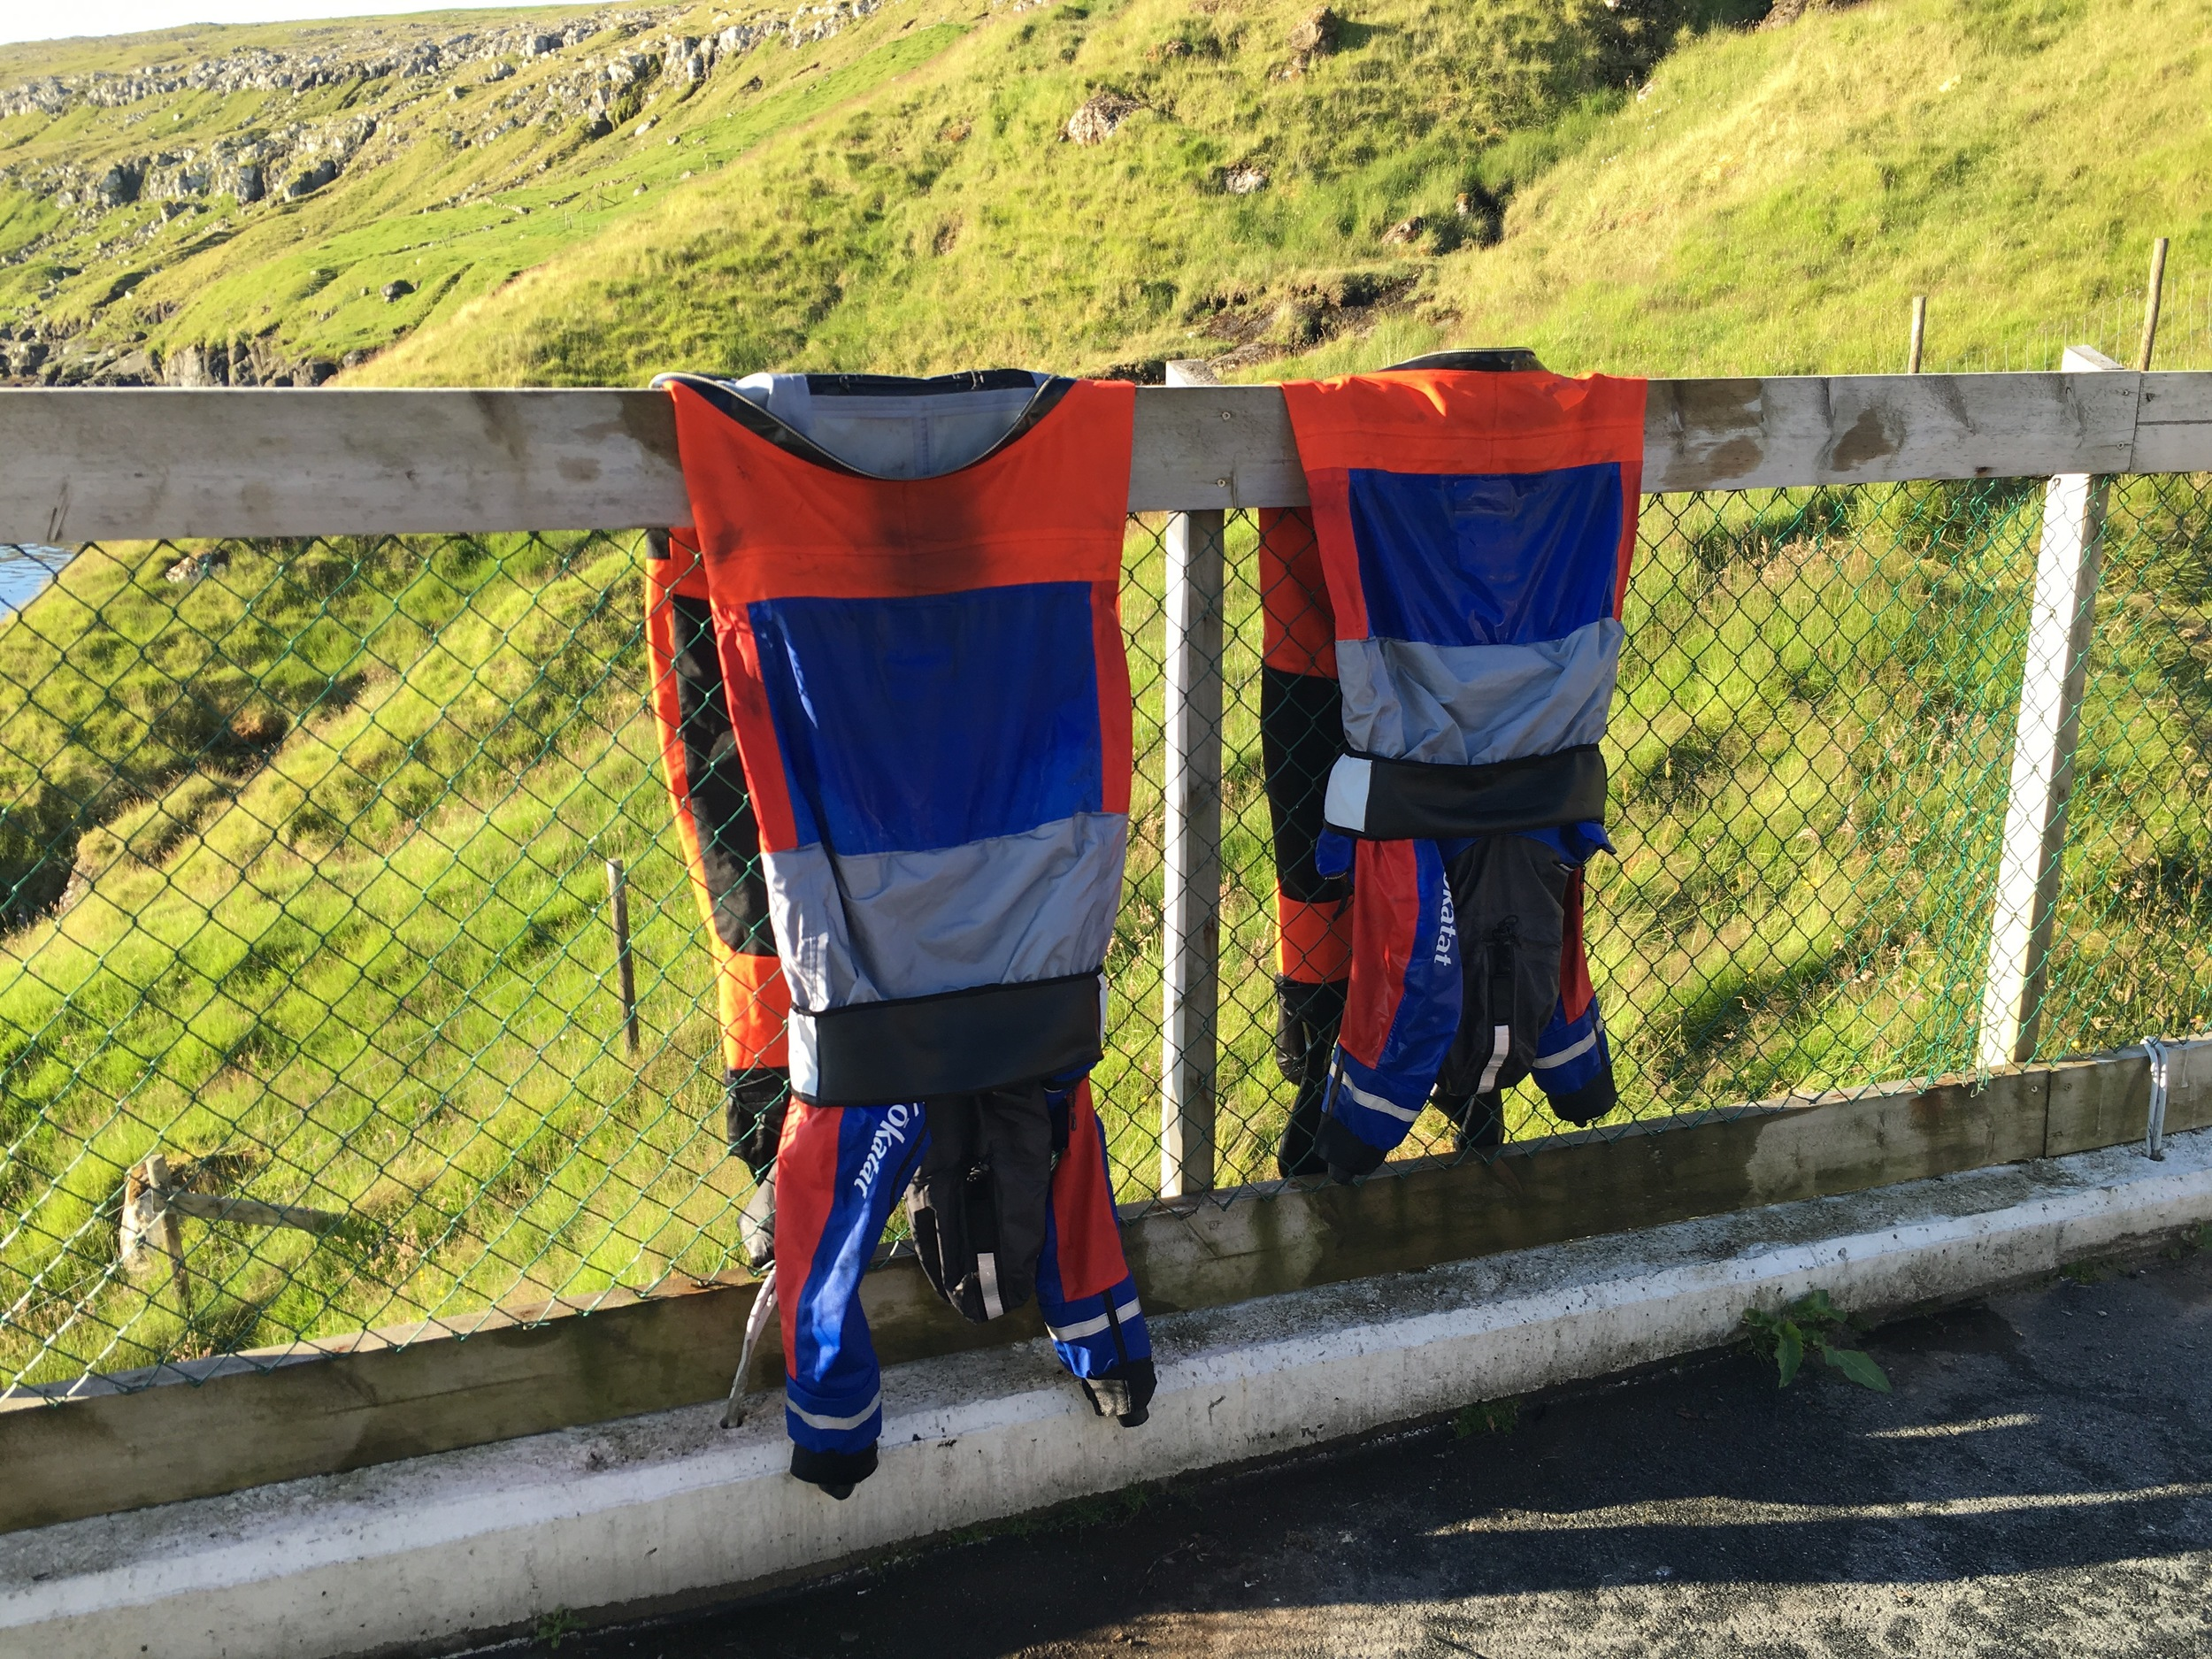 Their ocean dry suits having had a good wash are being left on shore today - the boys would have spent nearly 5 days in these so they were pretty stinky! Shorts and t-shirts is the kit of choice on this beautiful morning!